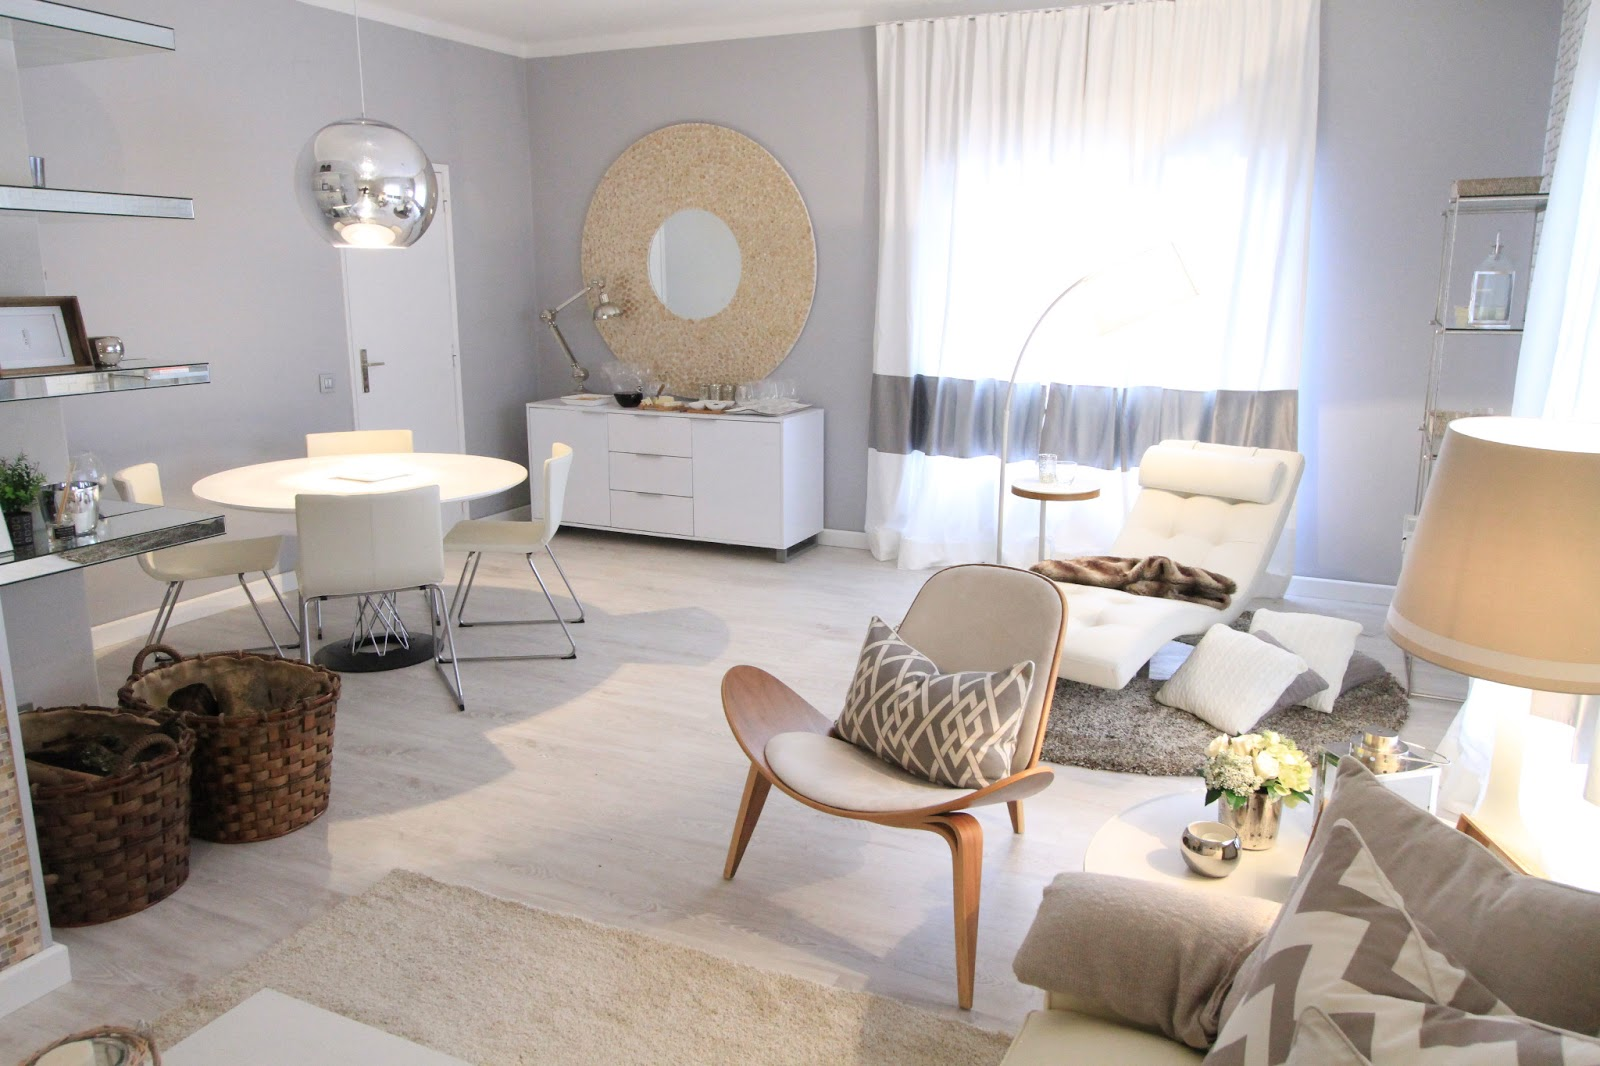 Home Styling Ana Antunes Querido Mudei A Casa Tv Show